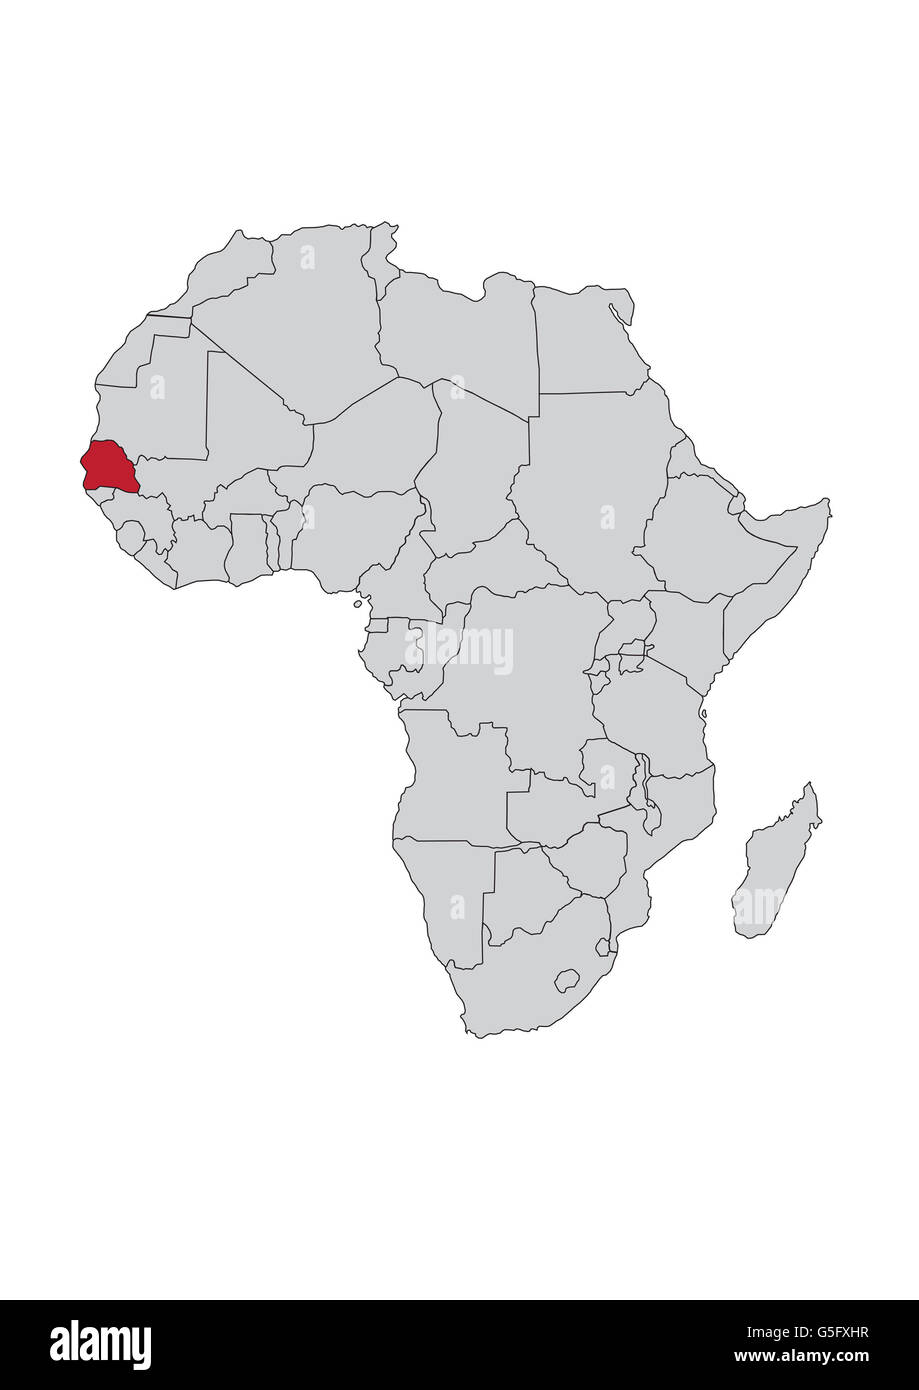 Senegal On Africa Map.Map Of Africa Senegal Stock Photos Map Of Africa Senegal Stock